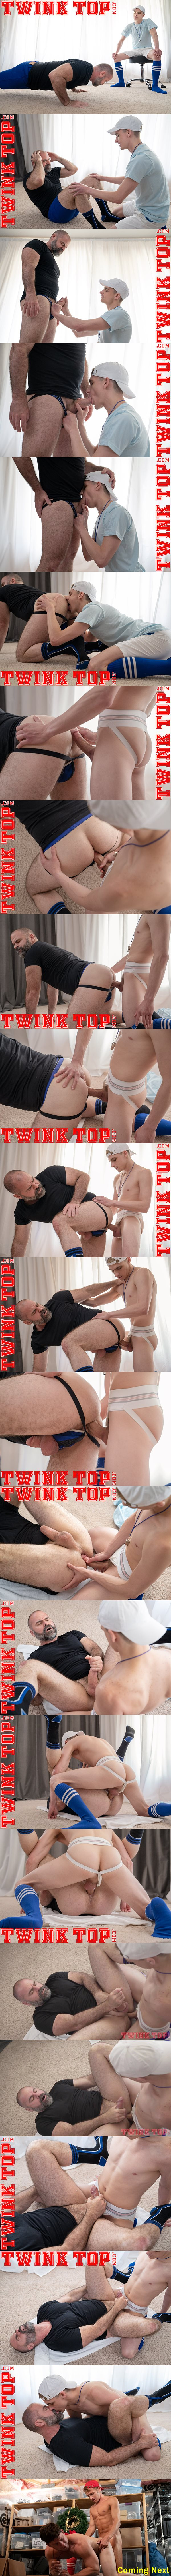 Twinktop - big-cocked twink Marcus Ryan barebacks manly bearded daddy coach Bishop Angus until he fucks the cum out of Angus and creampies him in Top Training 02